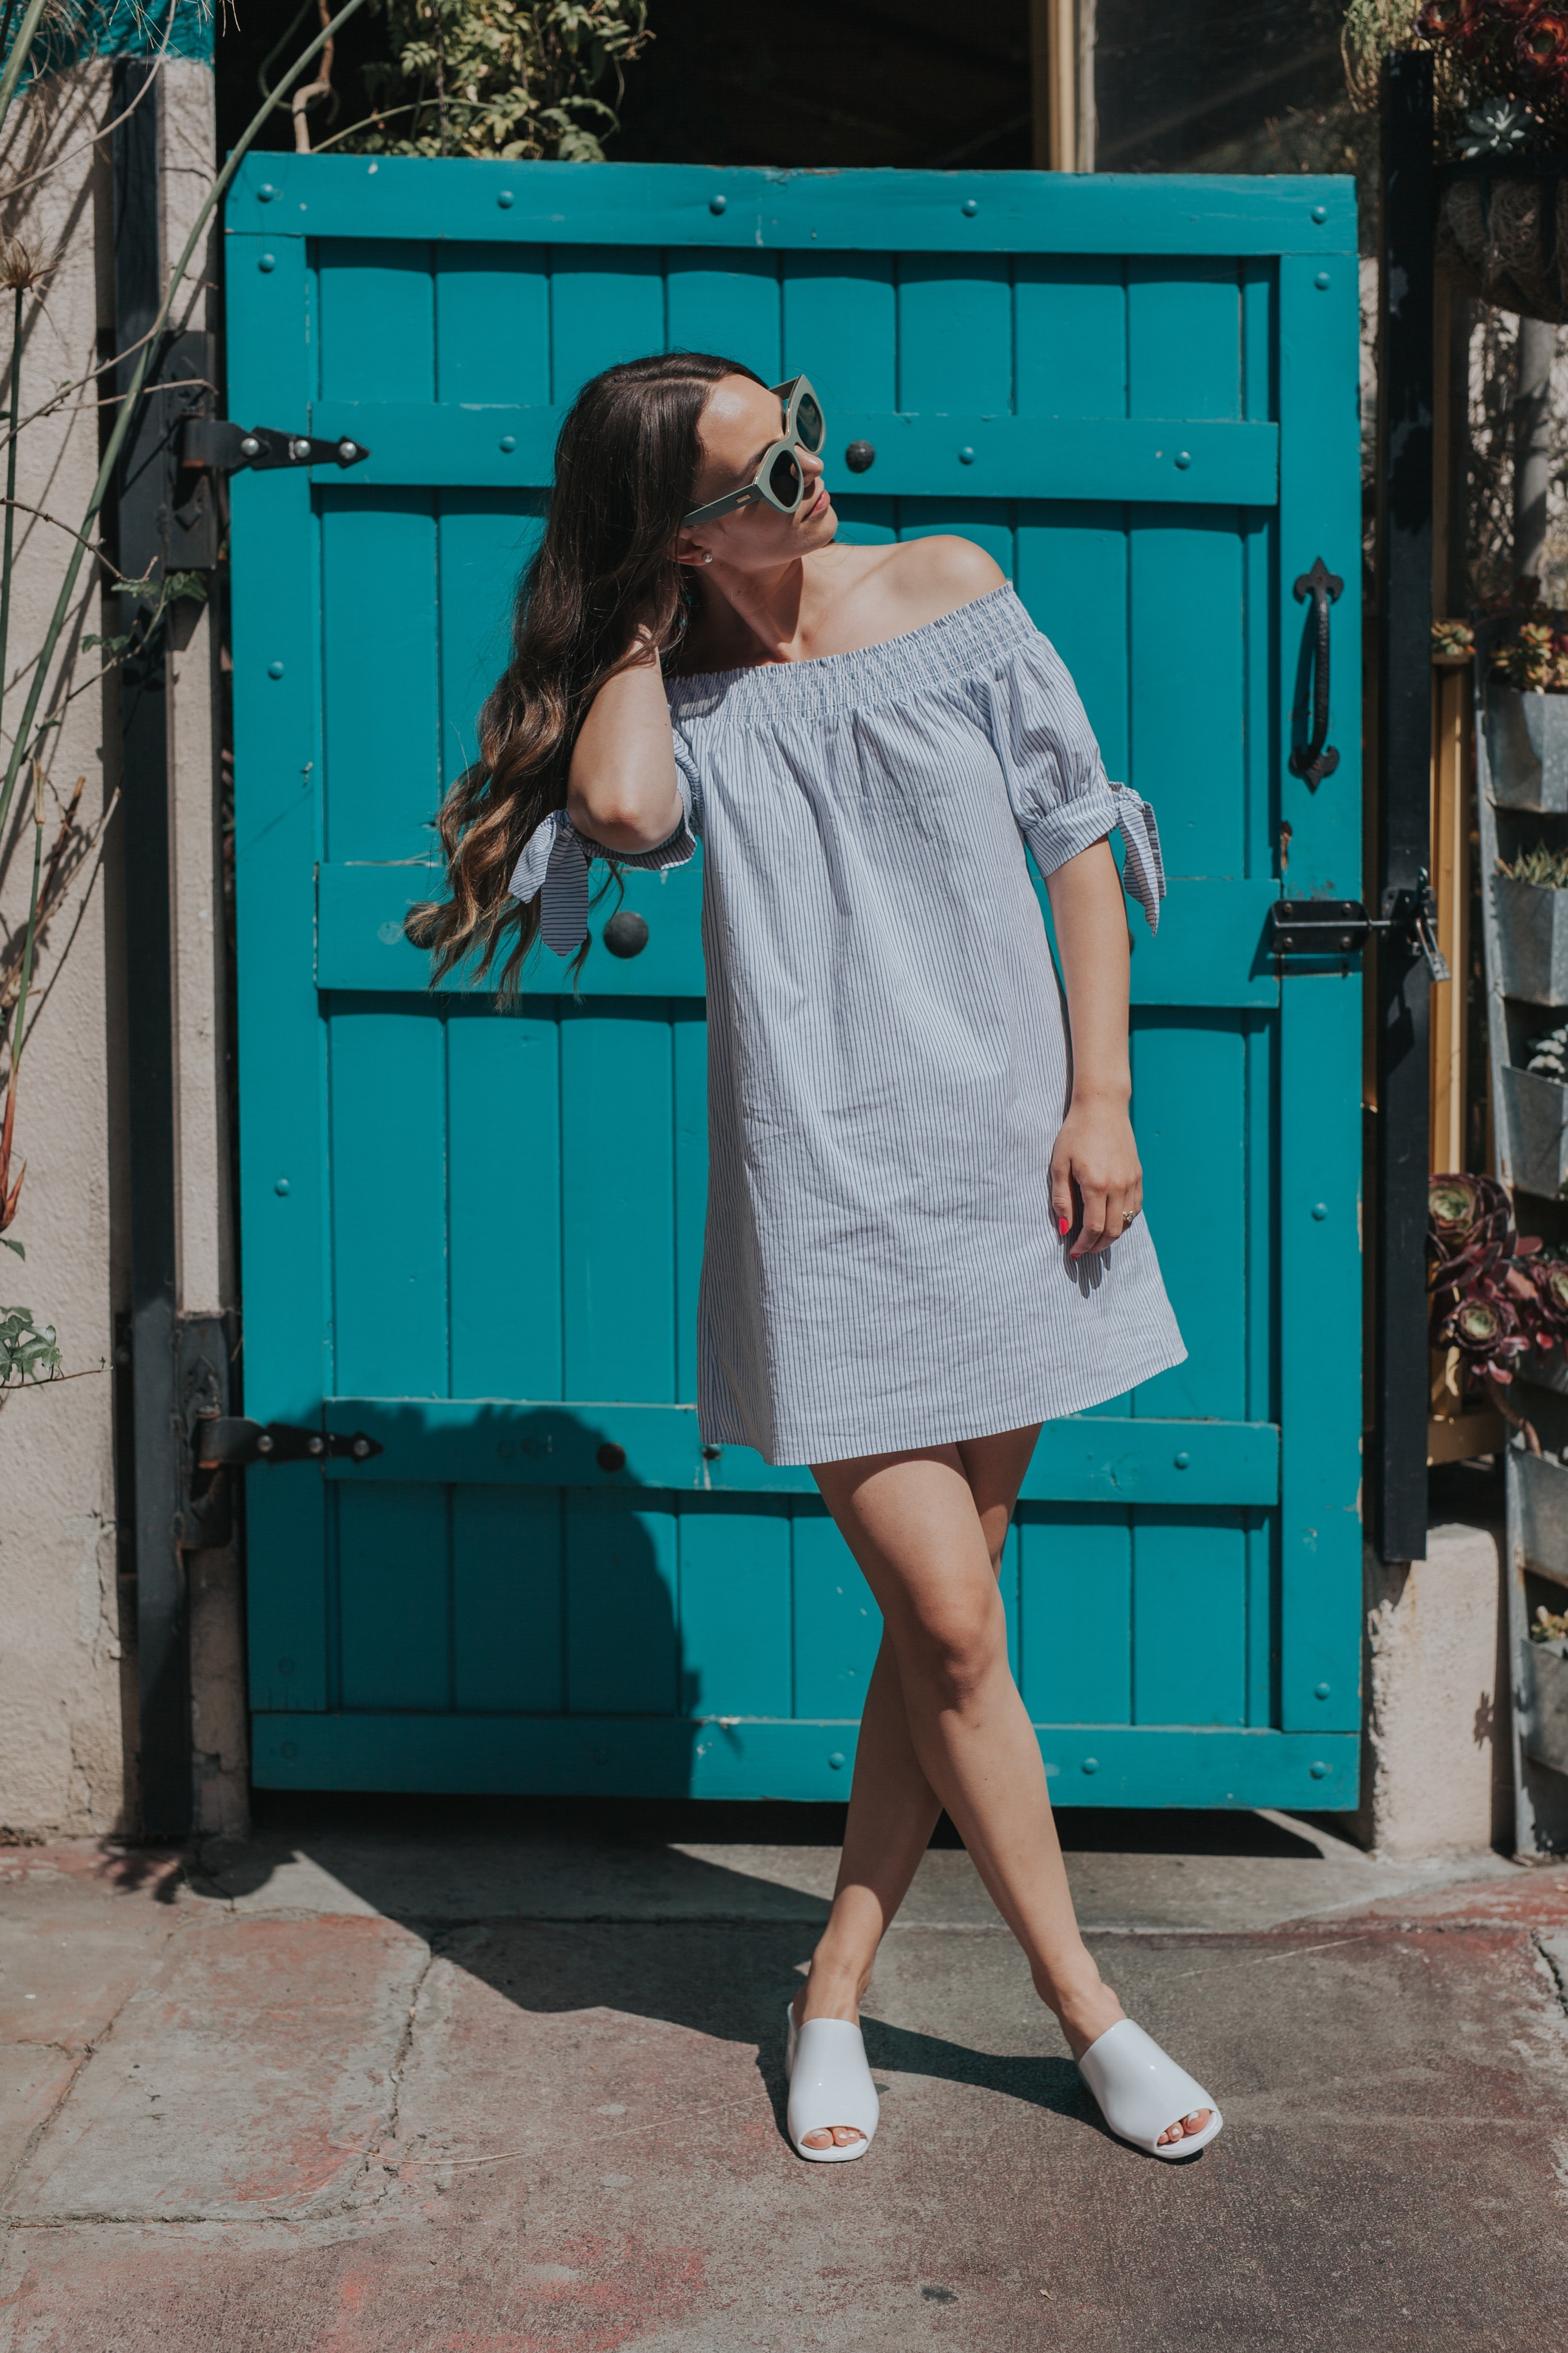 A young woman in sunglasses and a dress in front of blue wooden door